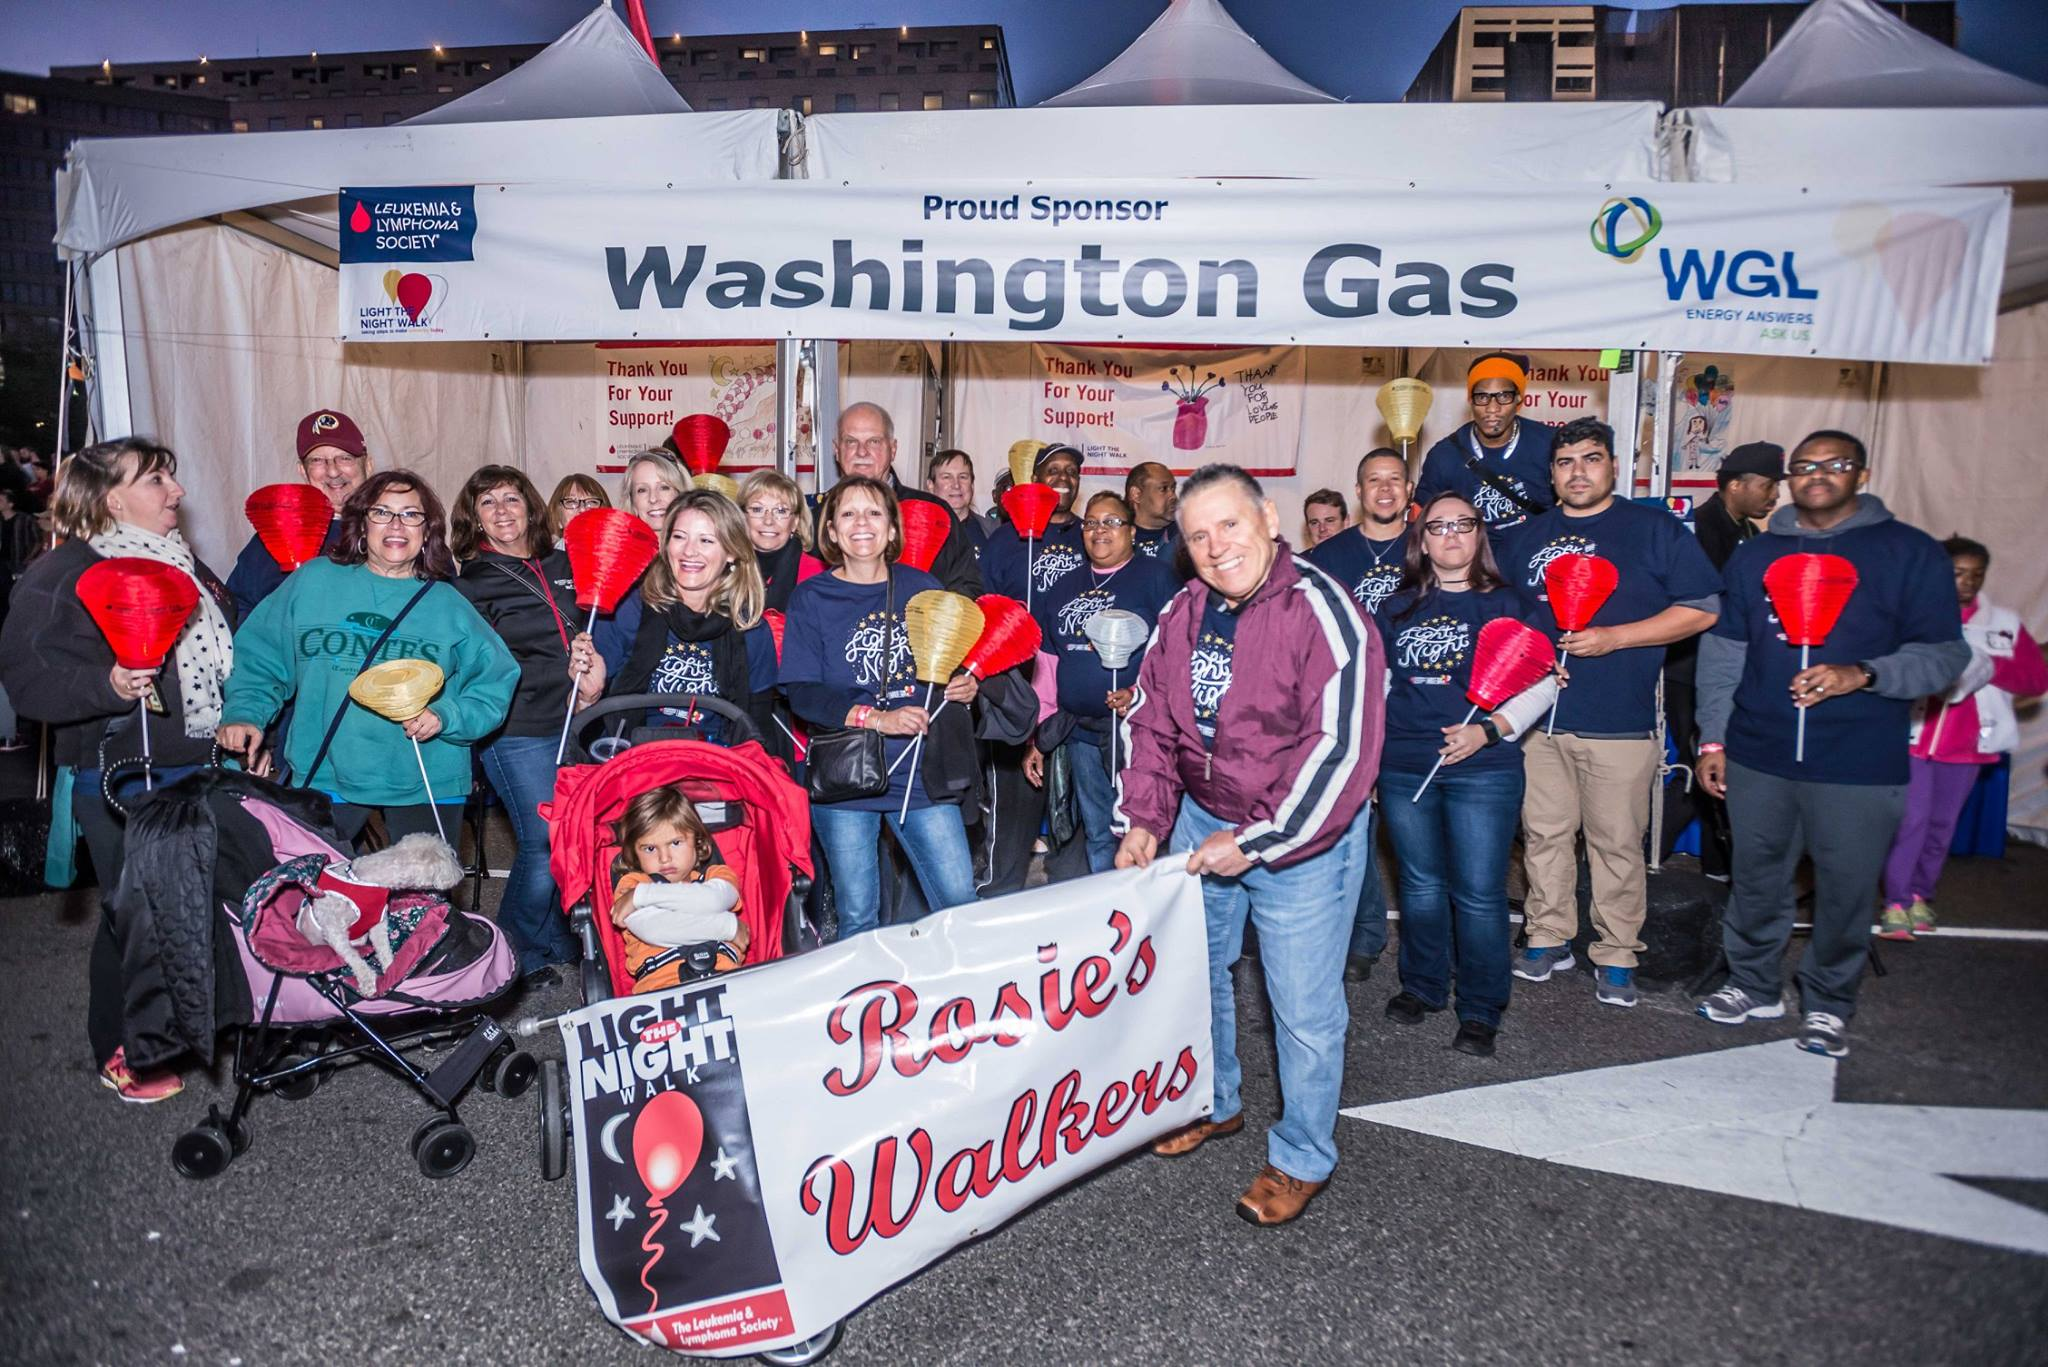 Washington Gas, Top Corporate Team Washington DC